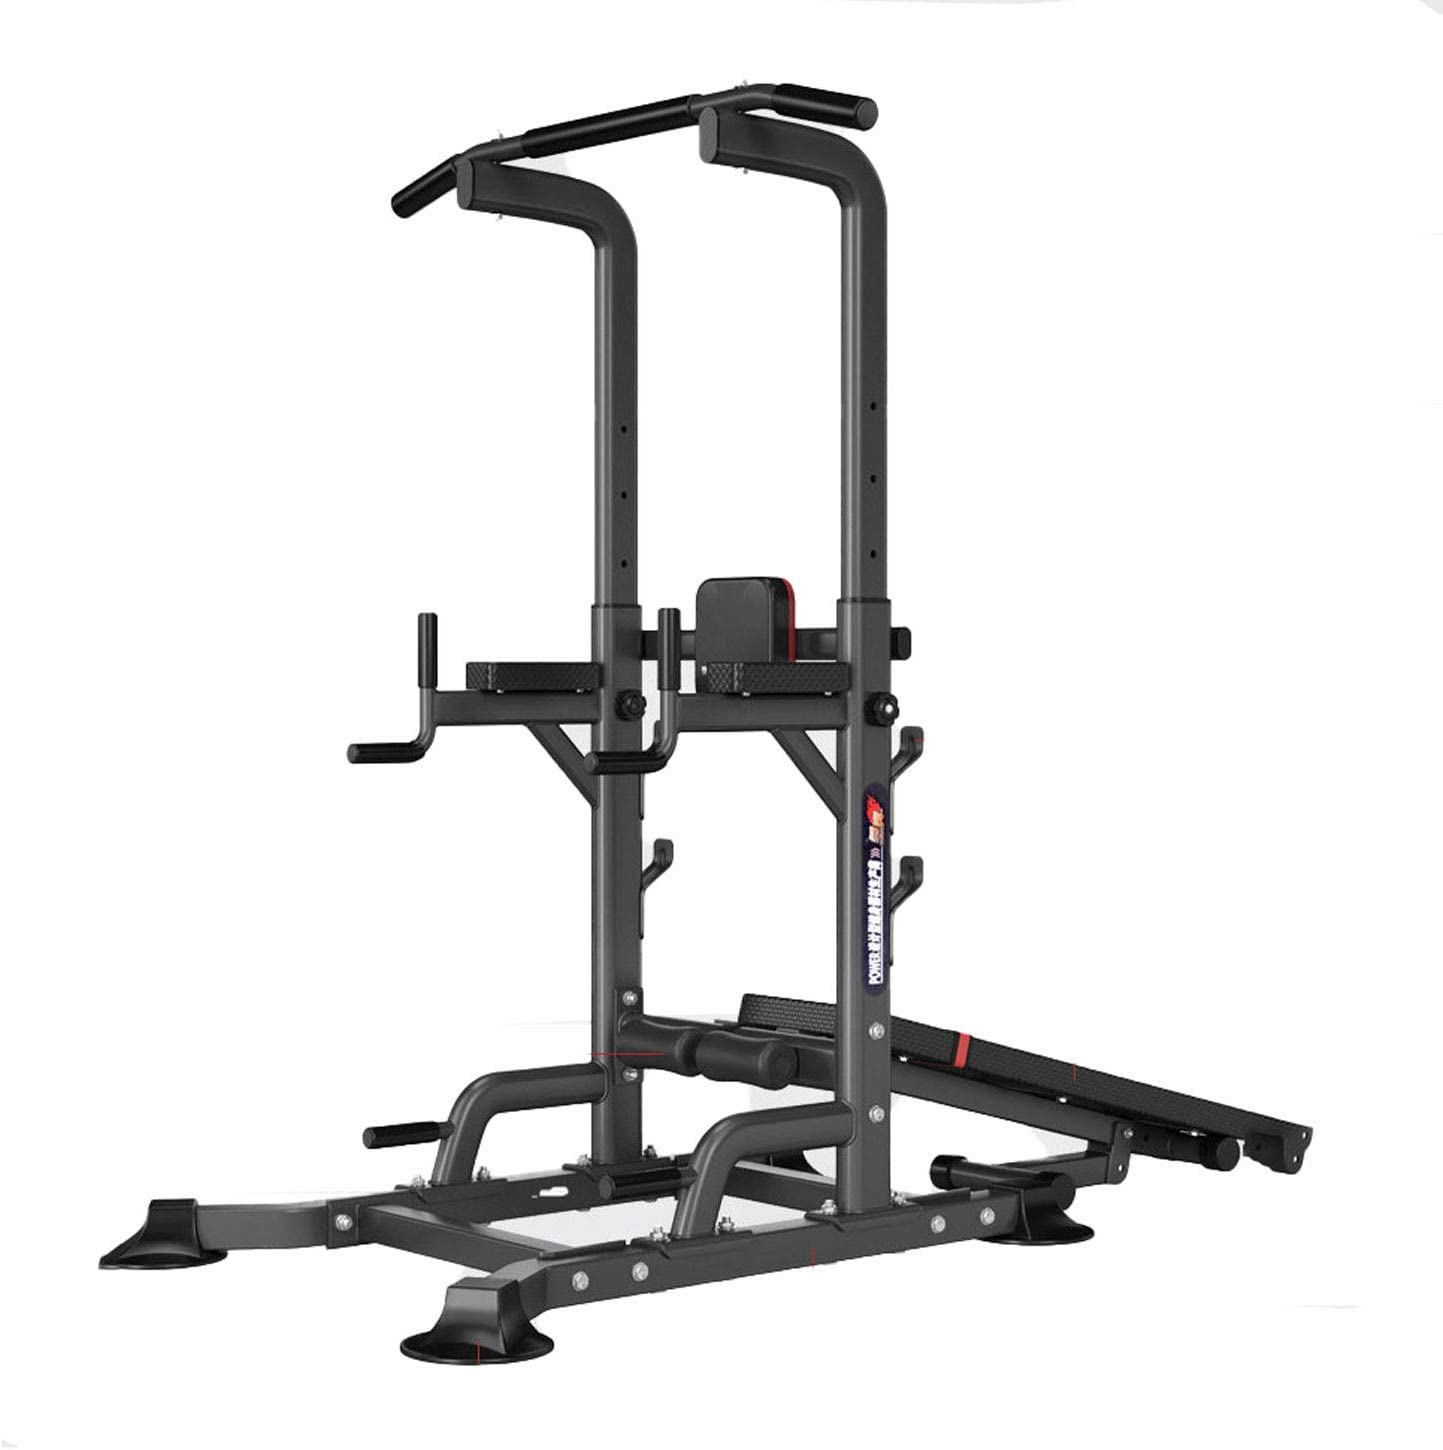 aiyu Power Tower with Bench Exercise Equipment, Multifunctional Workout Dip Station, Adjustable Height Pull Up Bar Station for Indoor Home Gym Fitness Dip Stand, Weight Lifting Bench Press, 1100LBS